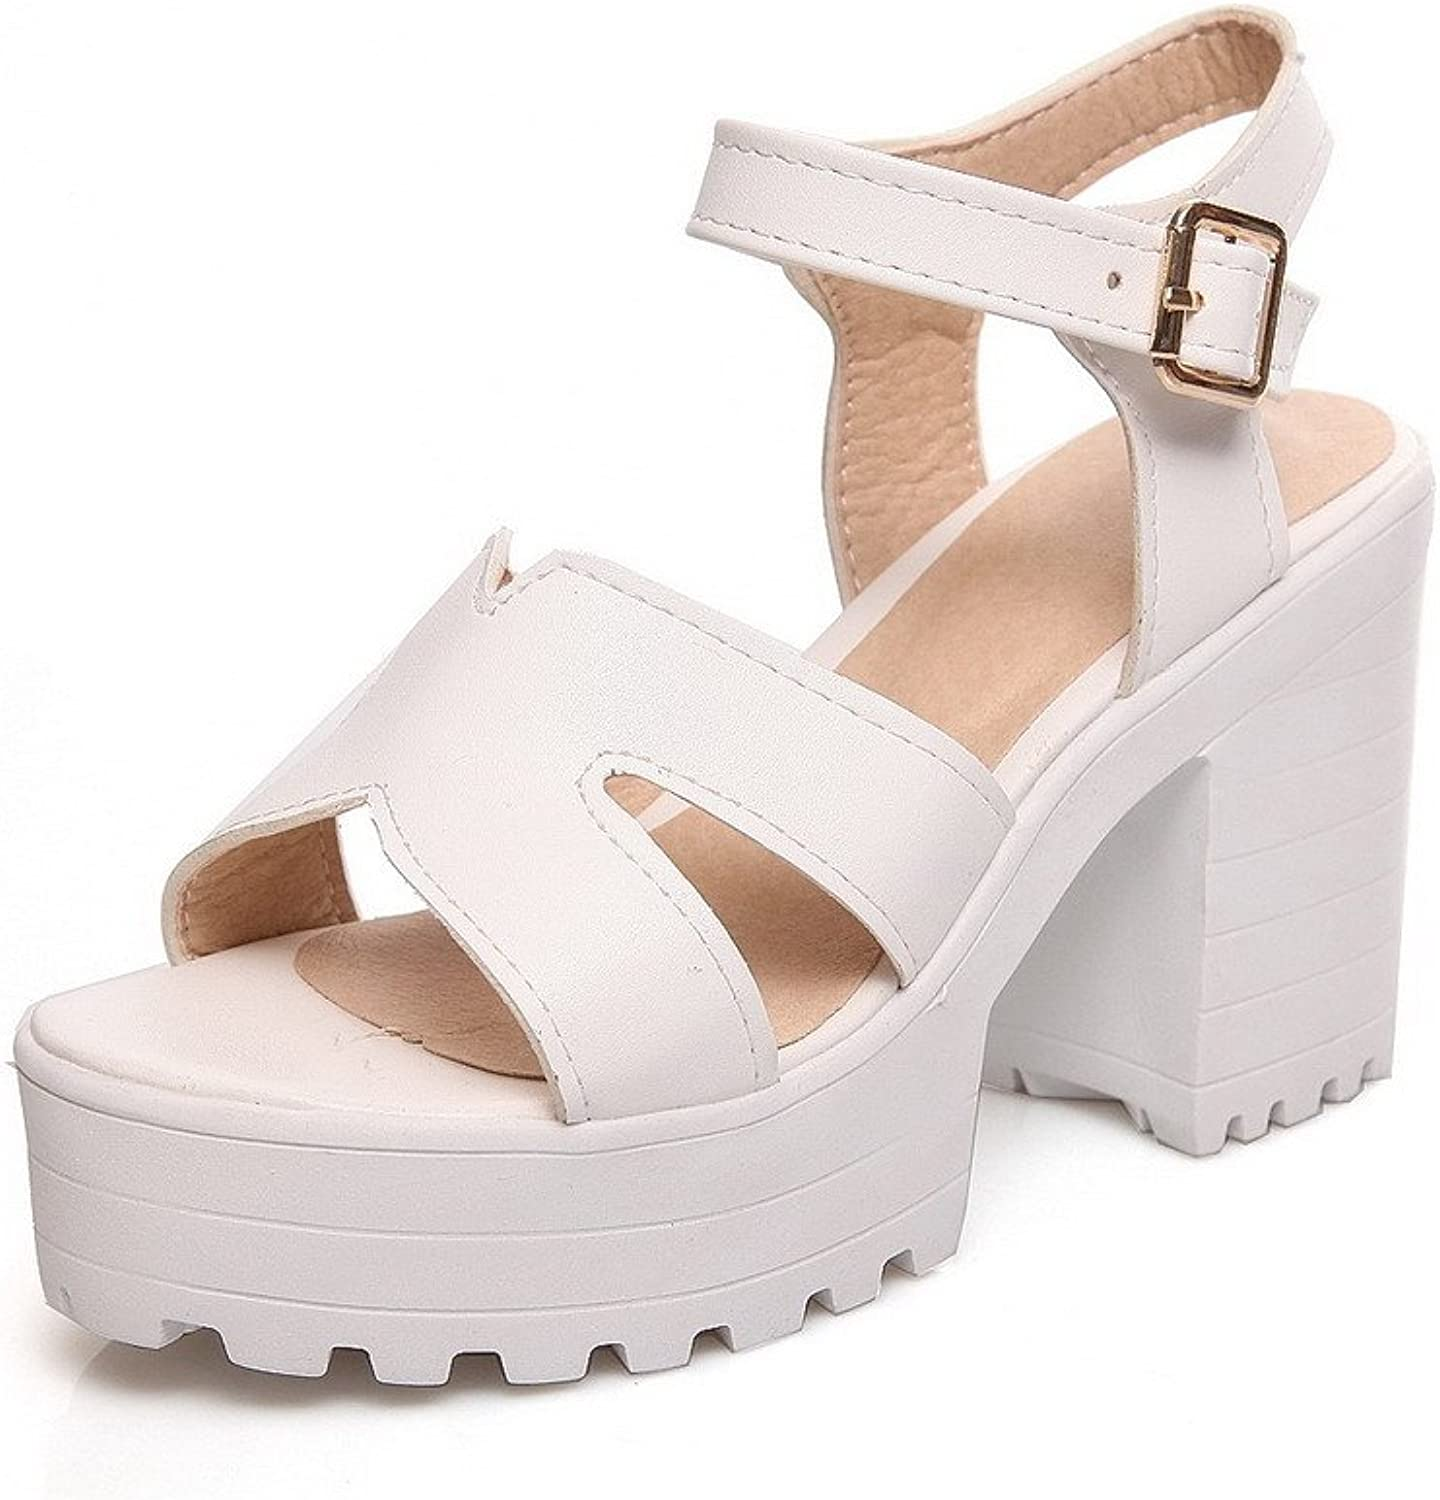 AllhqFashion Women's Open Toe High Heels Soft Material Solid Buckle Heeled-Sandals